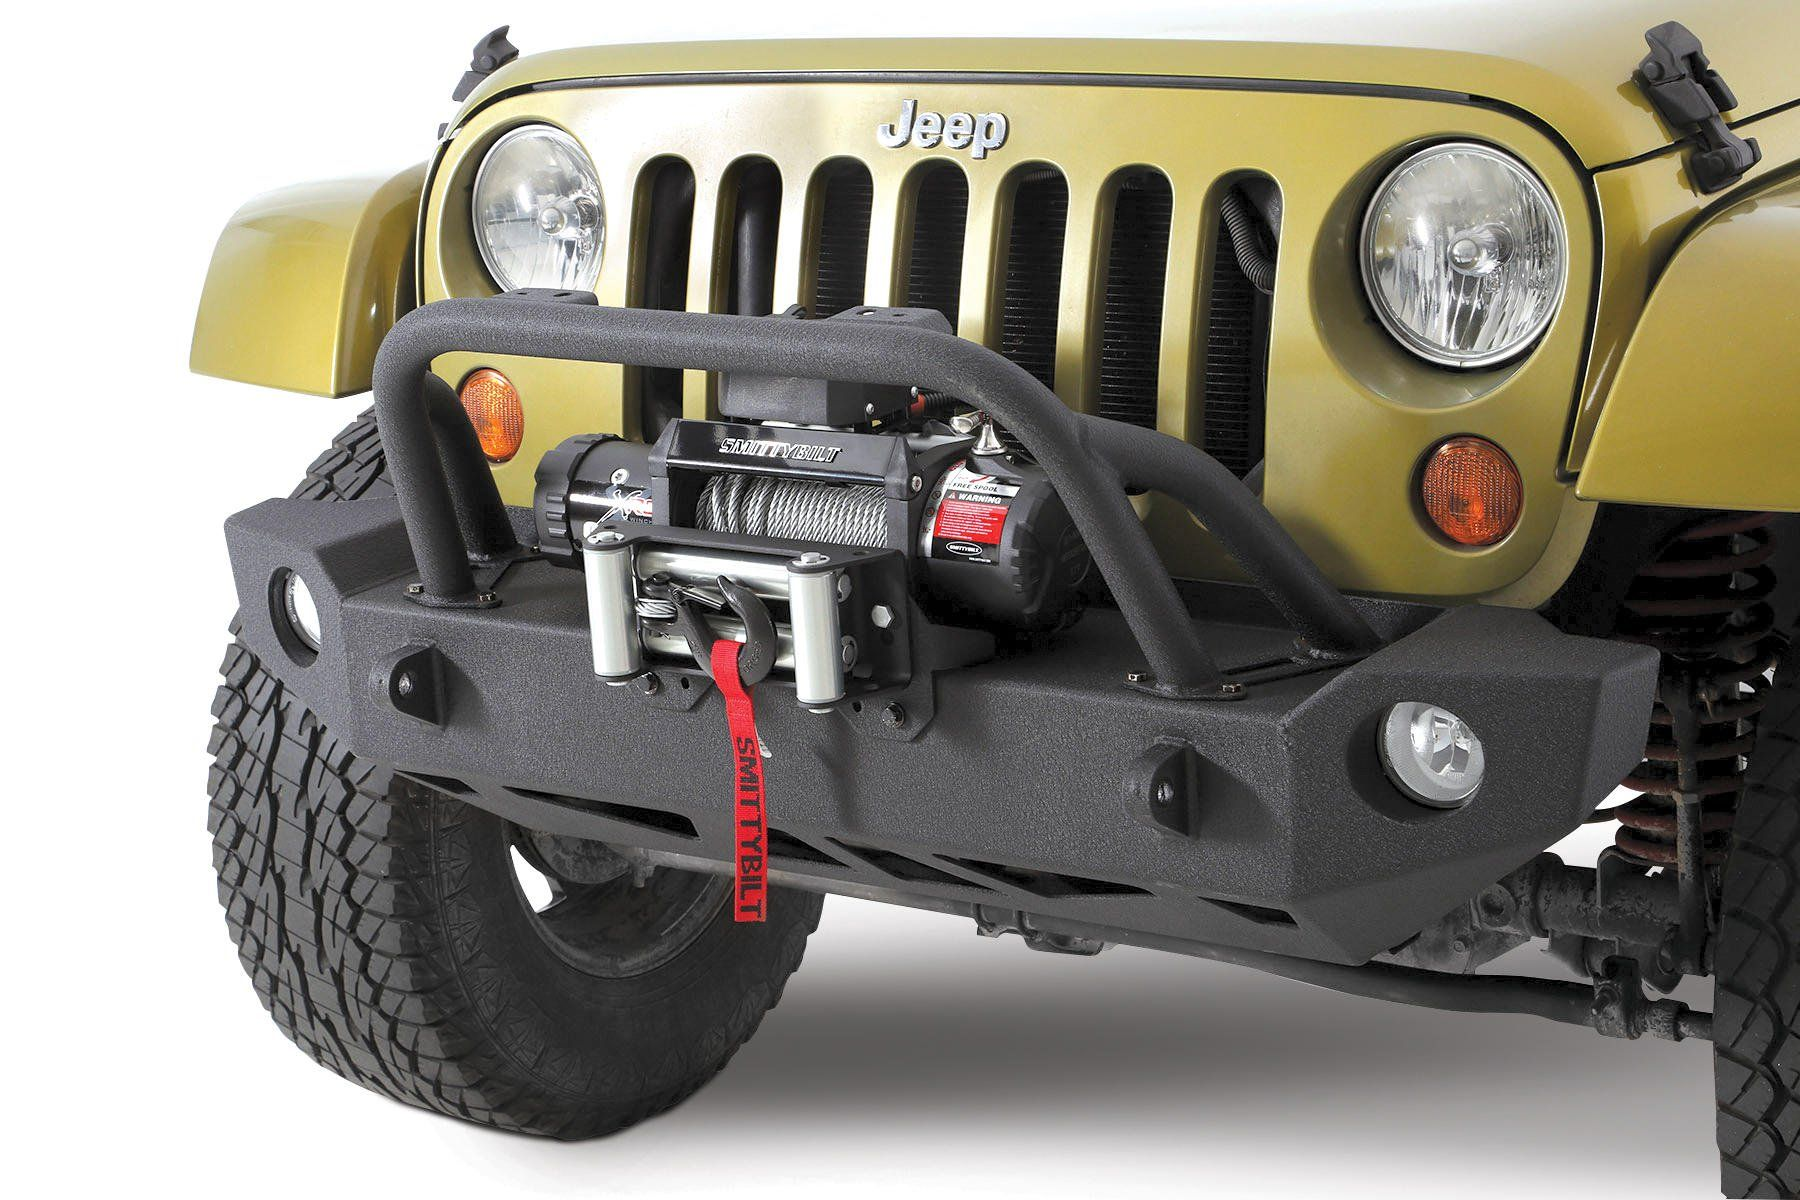 No Longer Does A Limited Budget Mean Capability For Your Jeep Wrangler Jk Accessories Smittybilt Src Carbine Front Bumper Unlimited